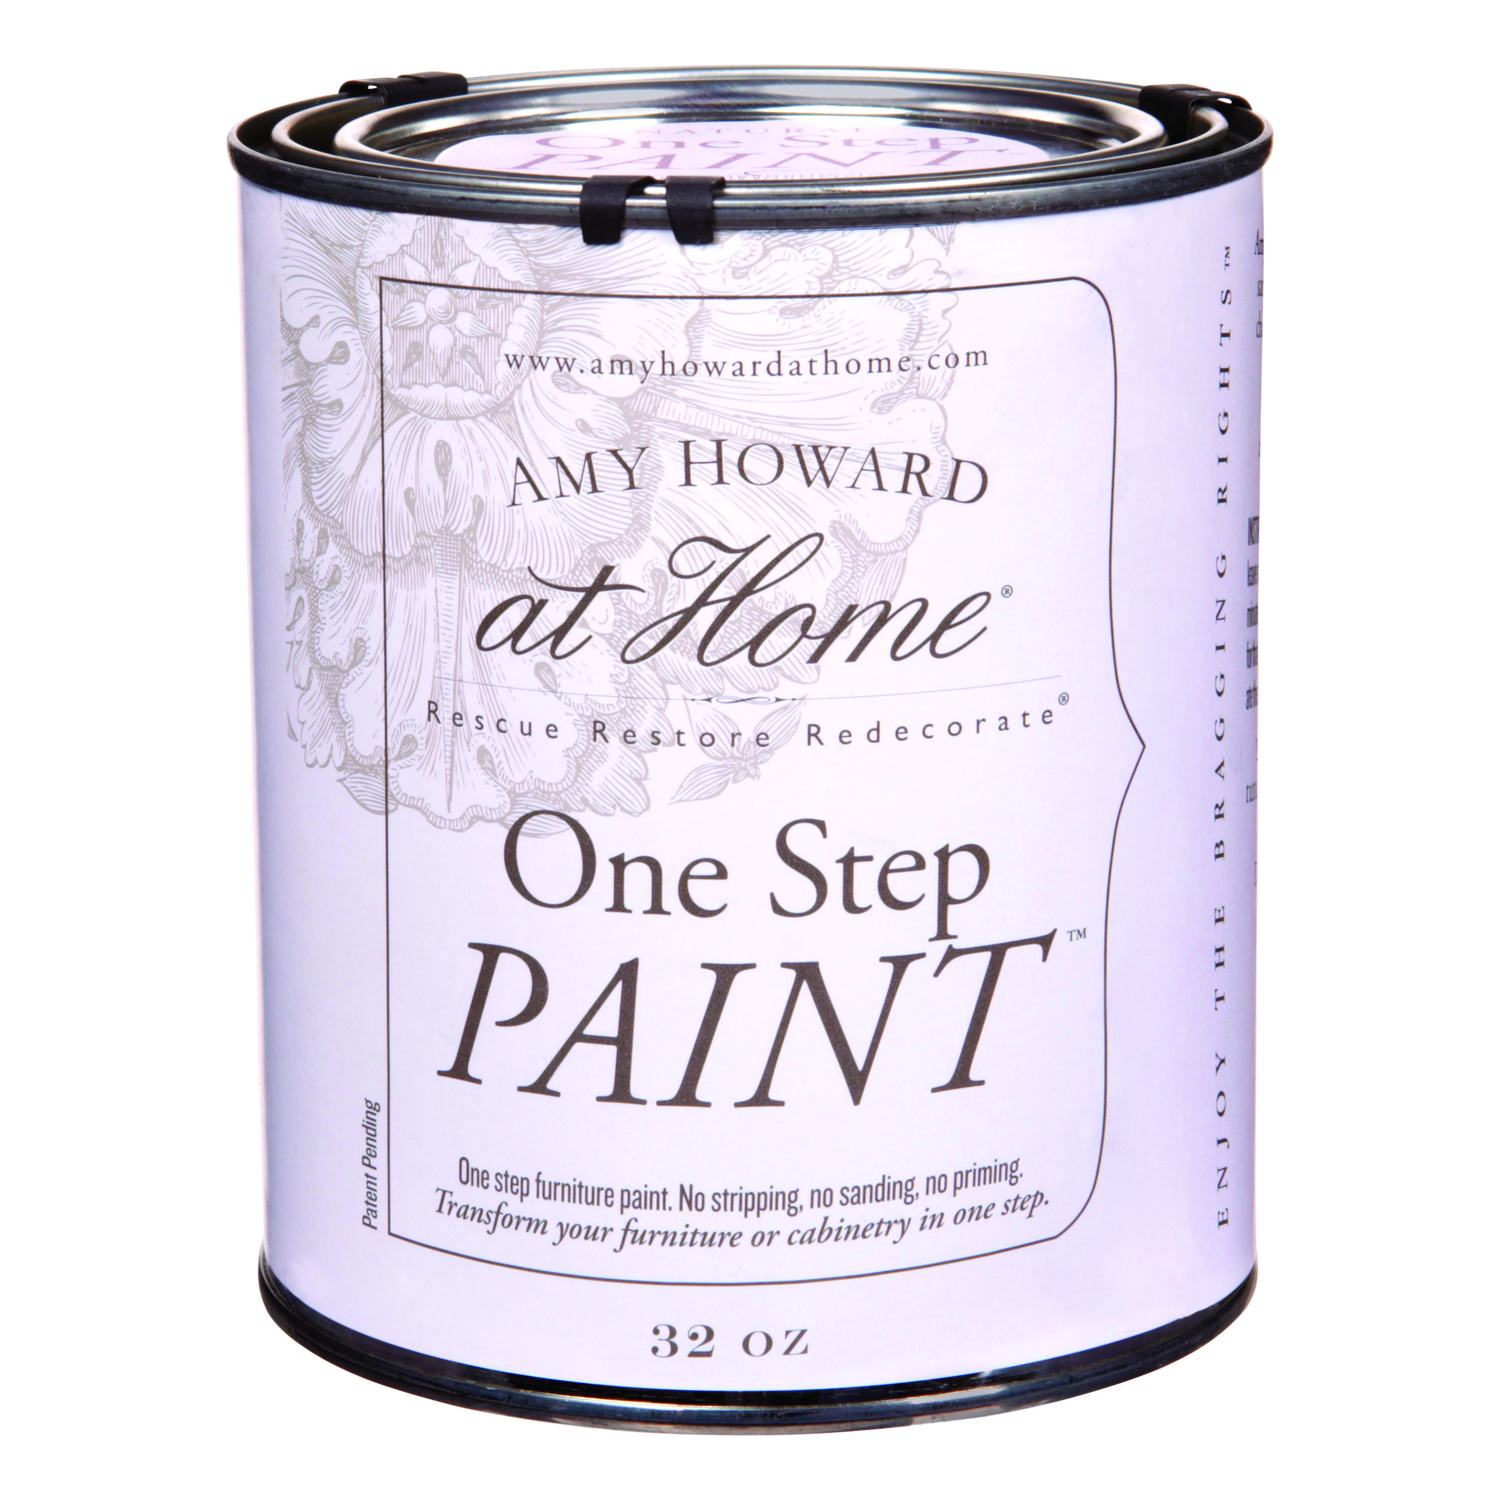 Amy Howard at Home  Peachy Keen  32 oz. One Step Furniture Paint  Latex